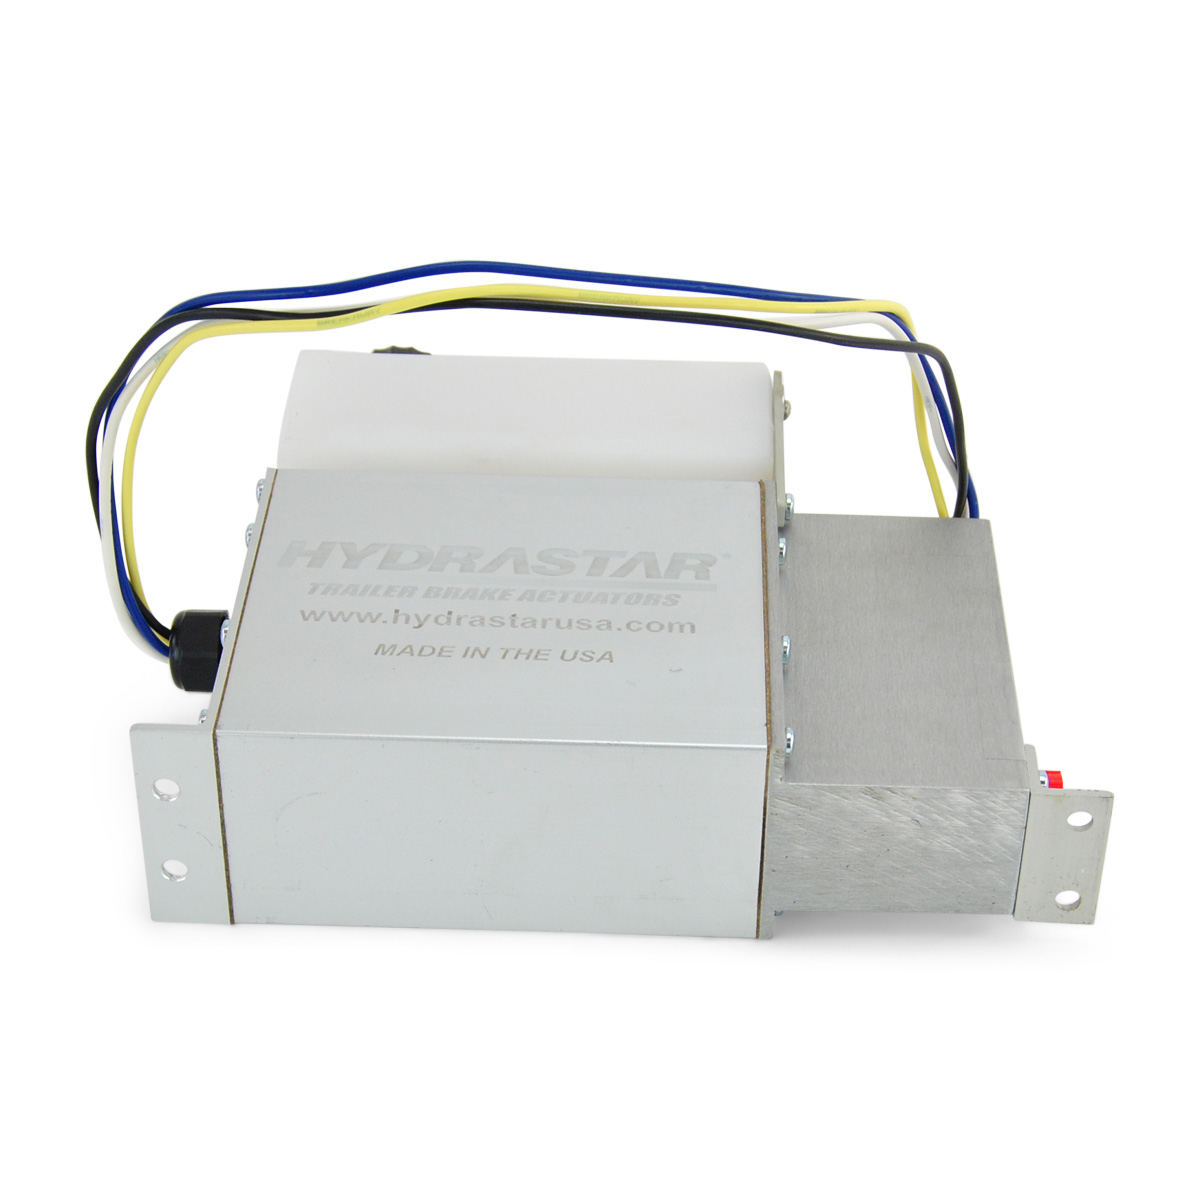 Hydrastar Electric Over Hydraulic Actuator 1,600 psi Extra